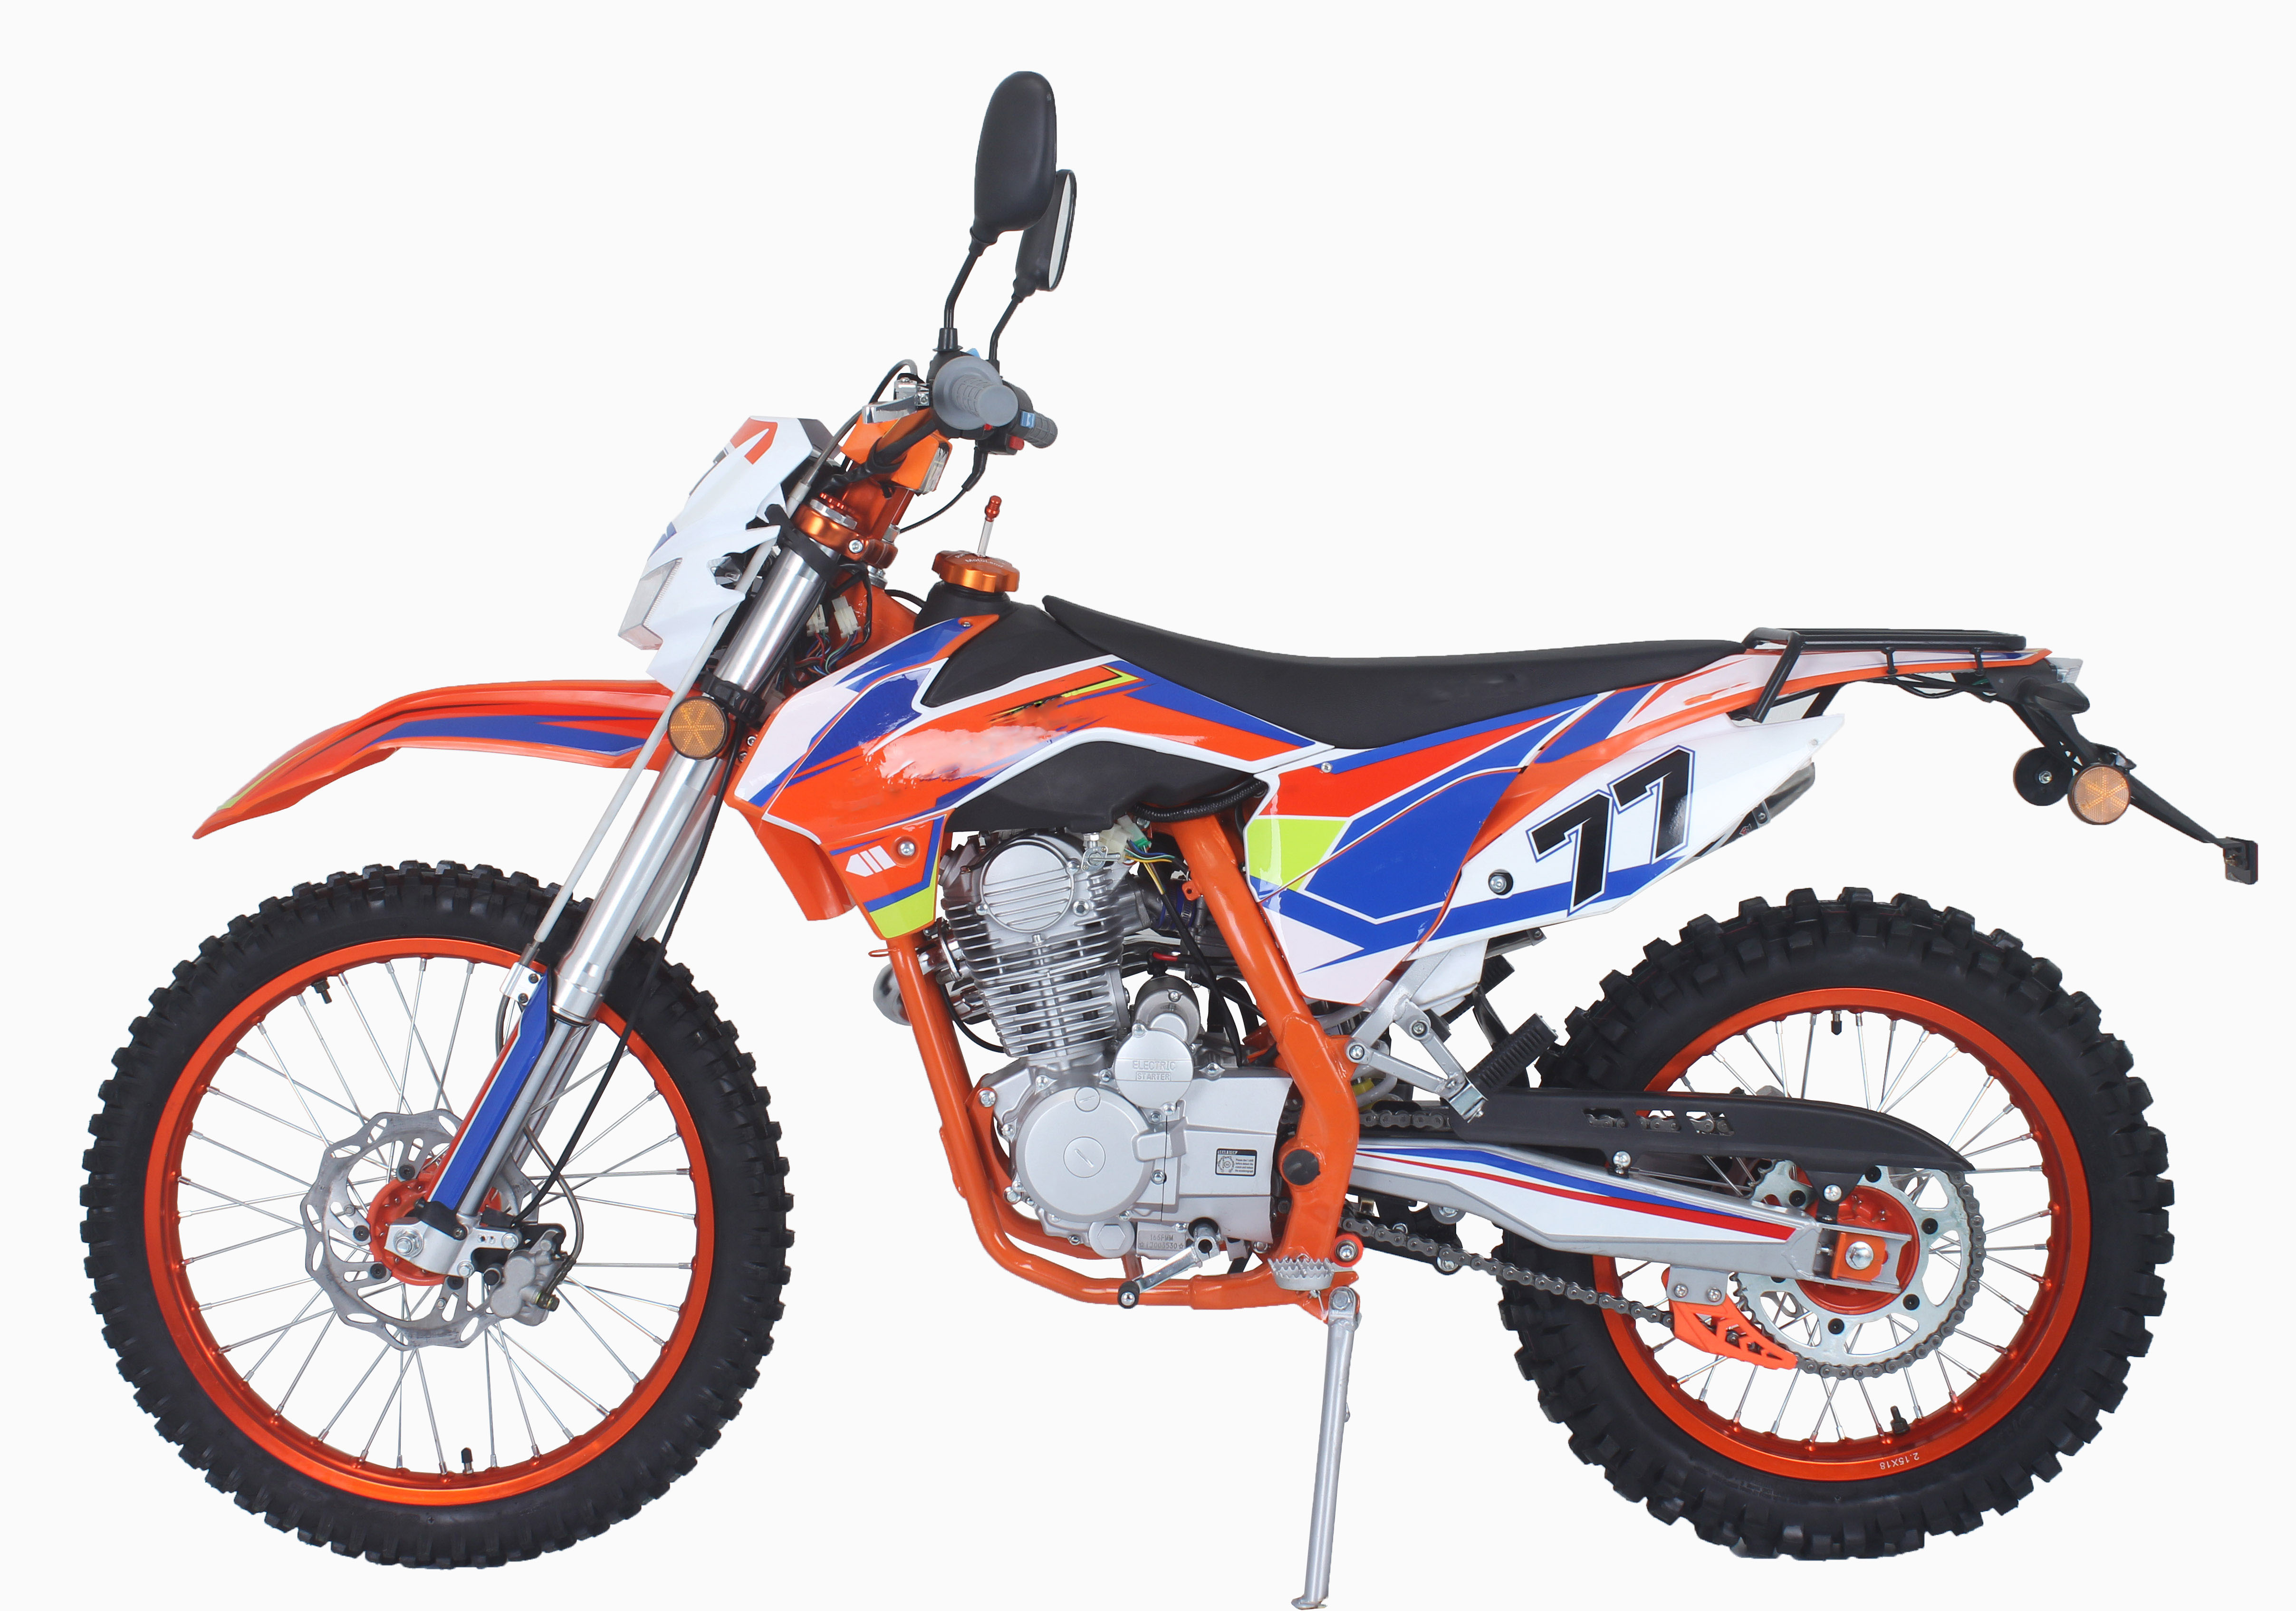 2018 New on road 250cc dirt bike